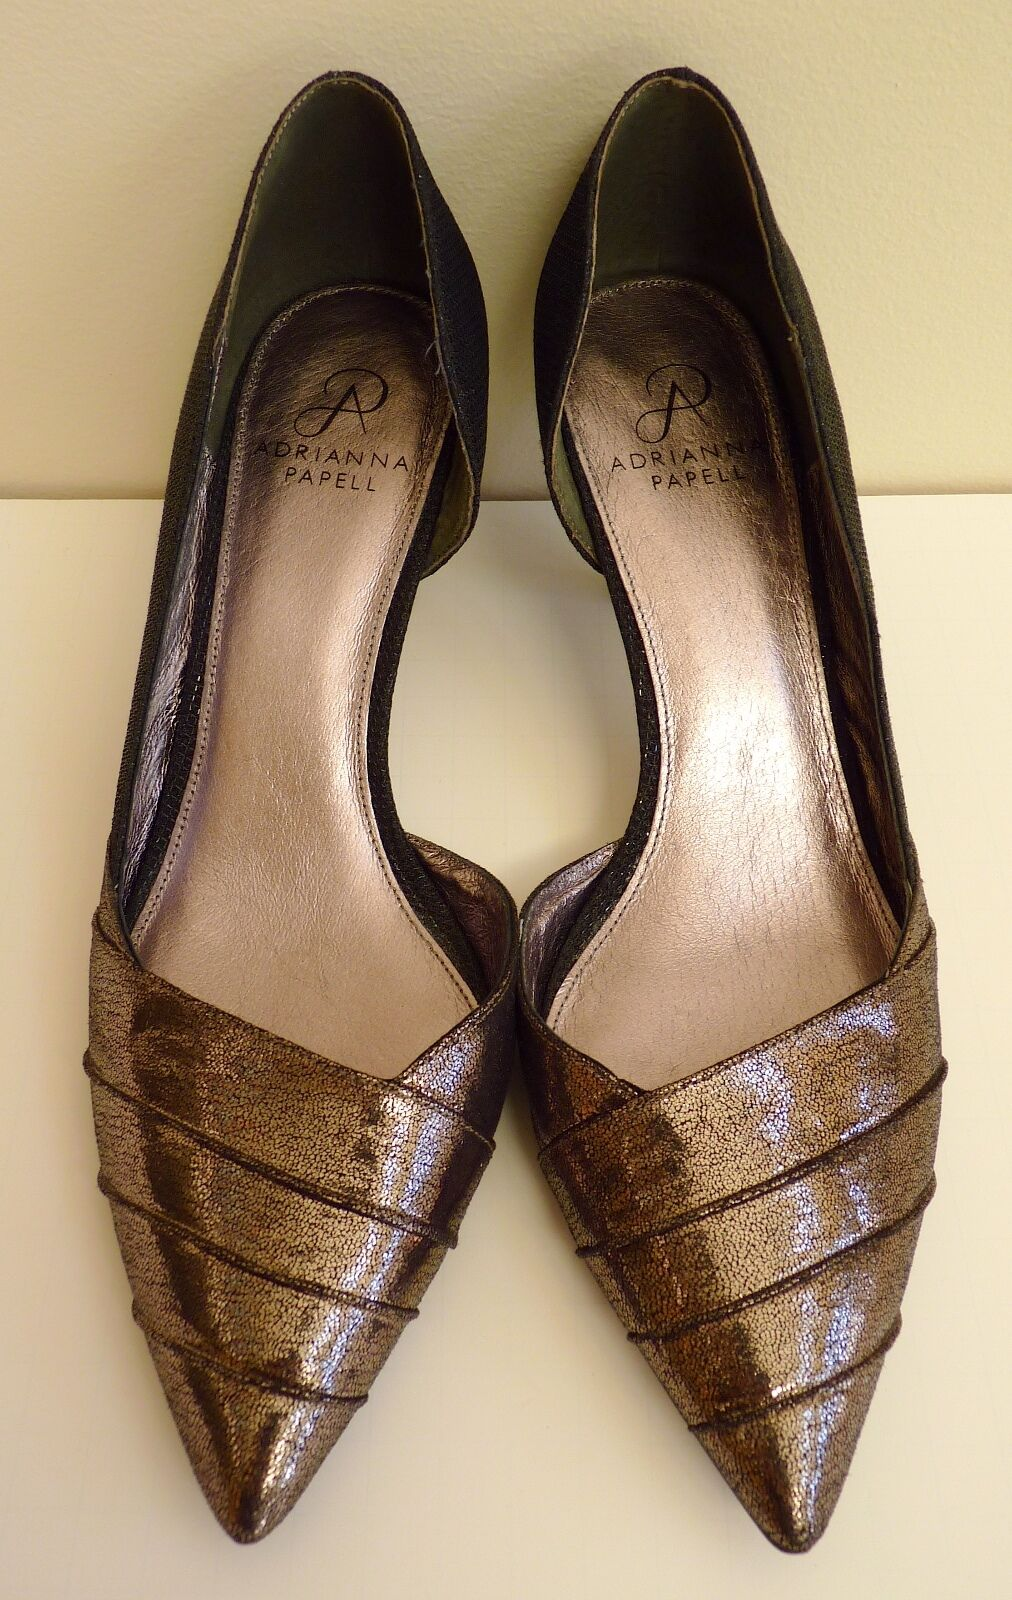 Adrianna Papell Brown Leather Pointy Toe High Heel Shoes Size 9.5M EUC